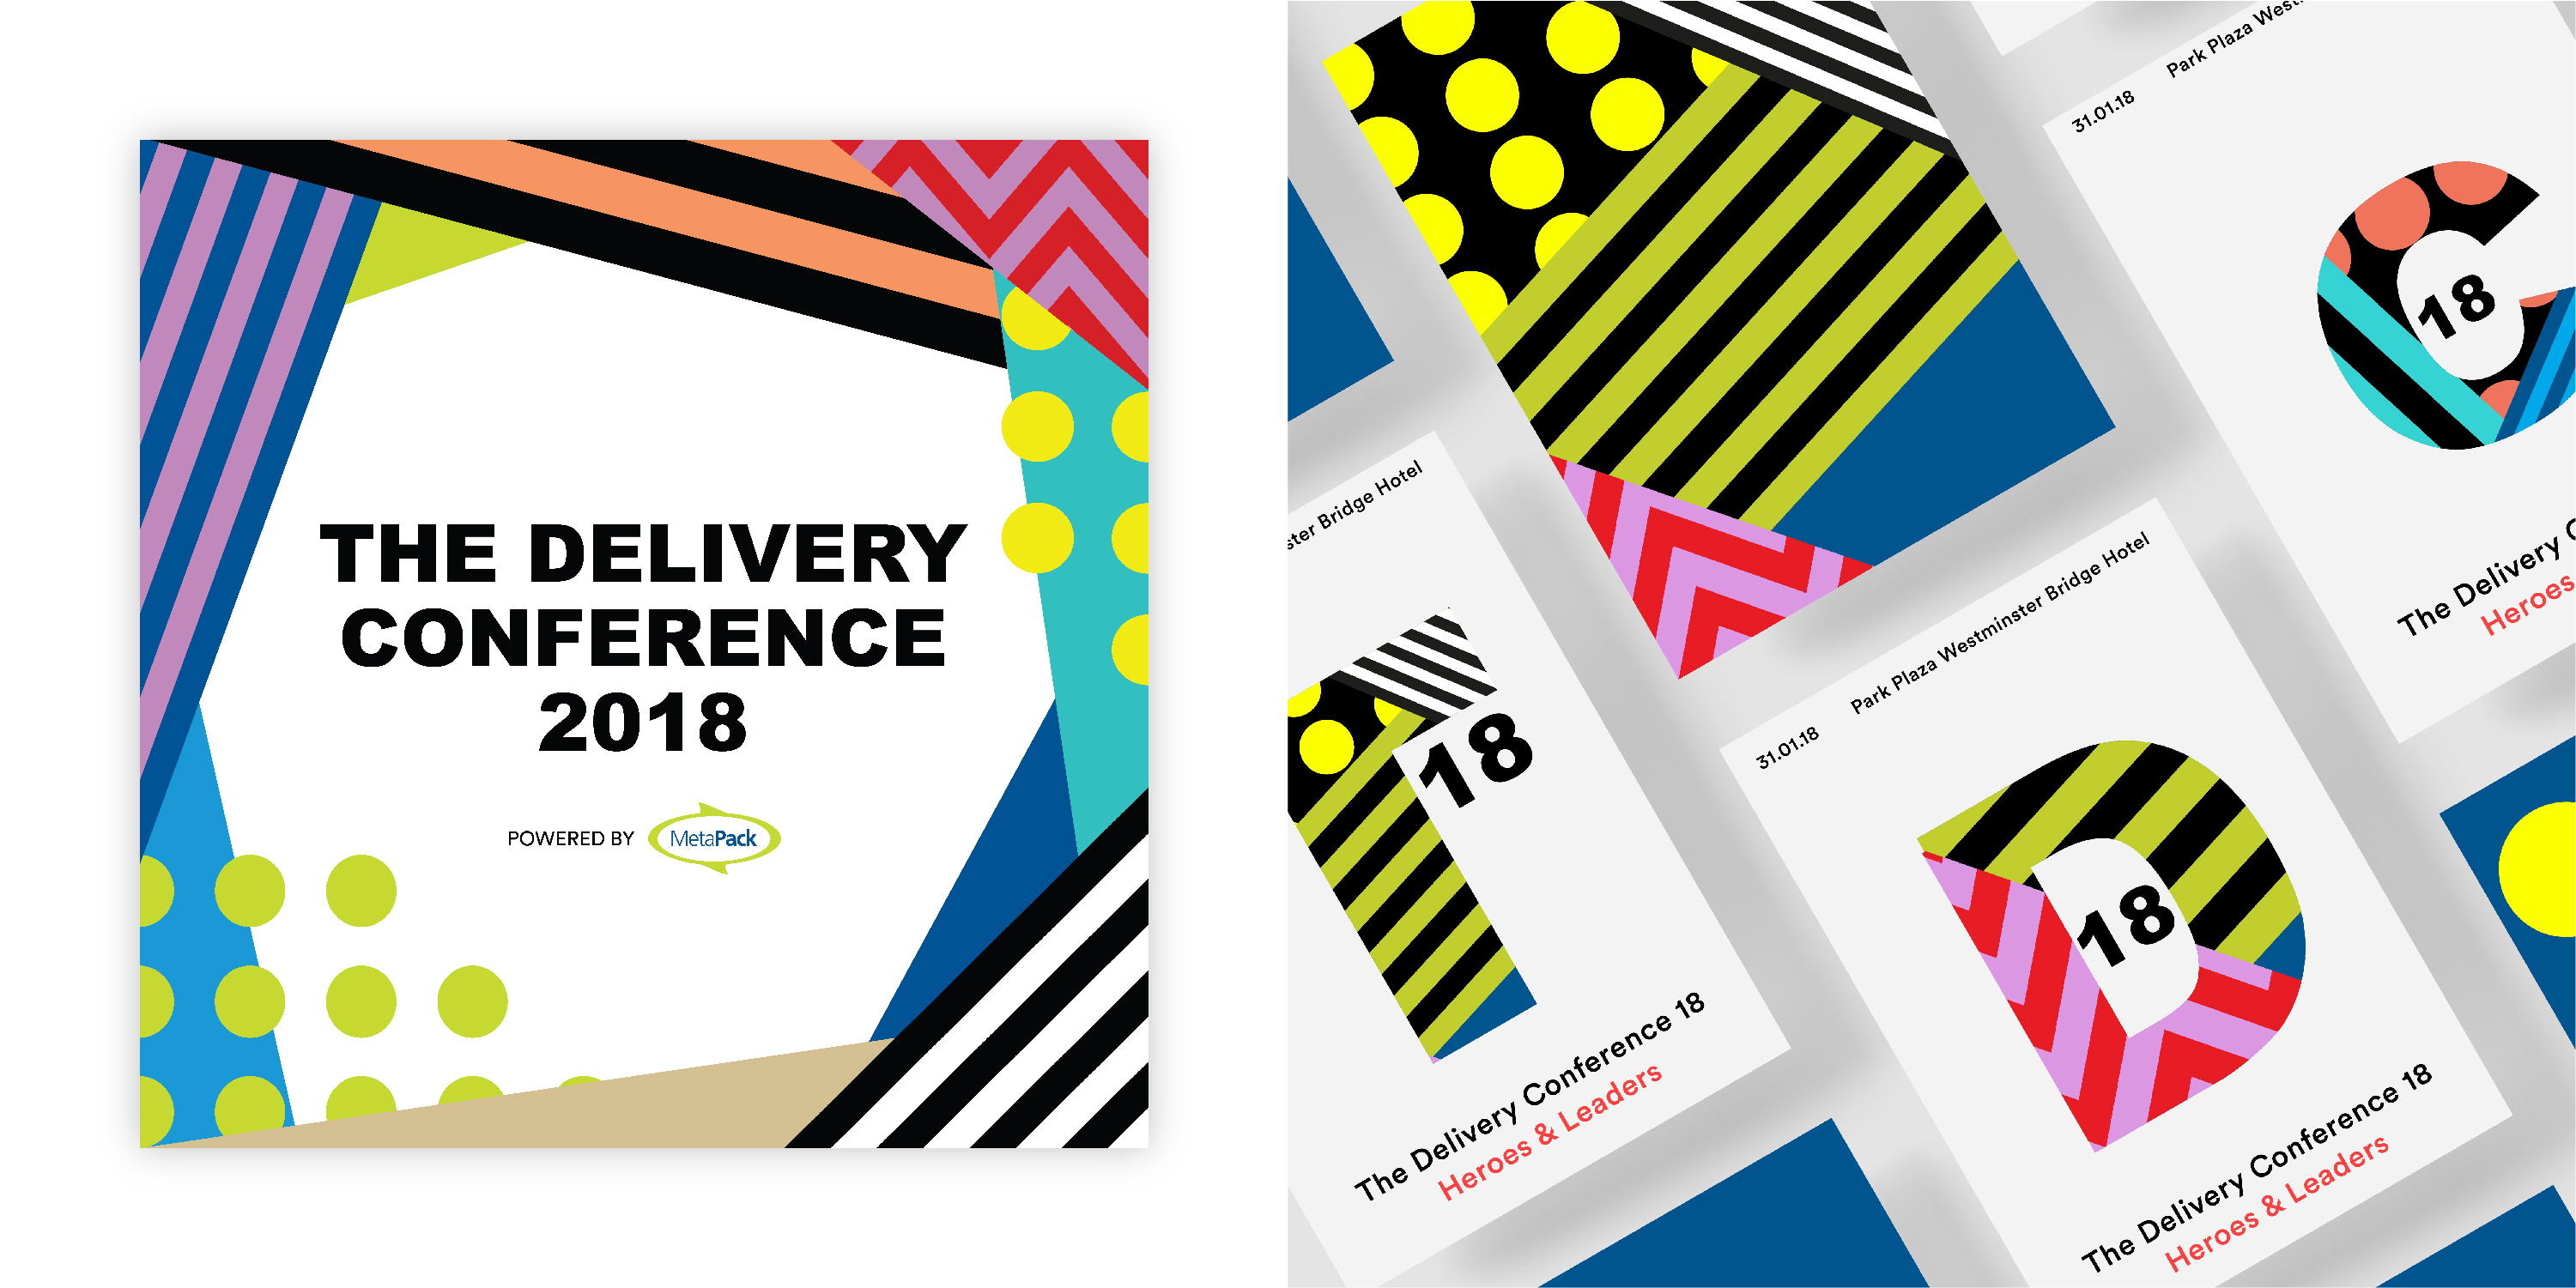 The Delivery Conference 2018